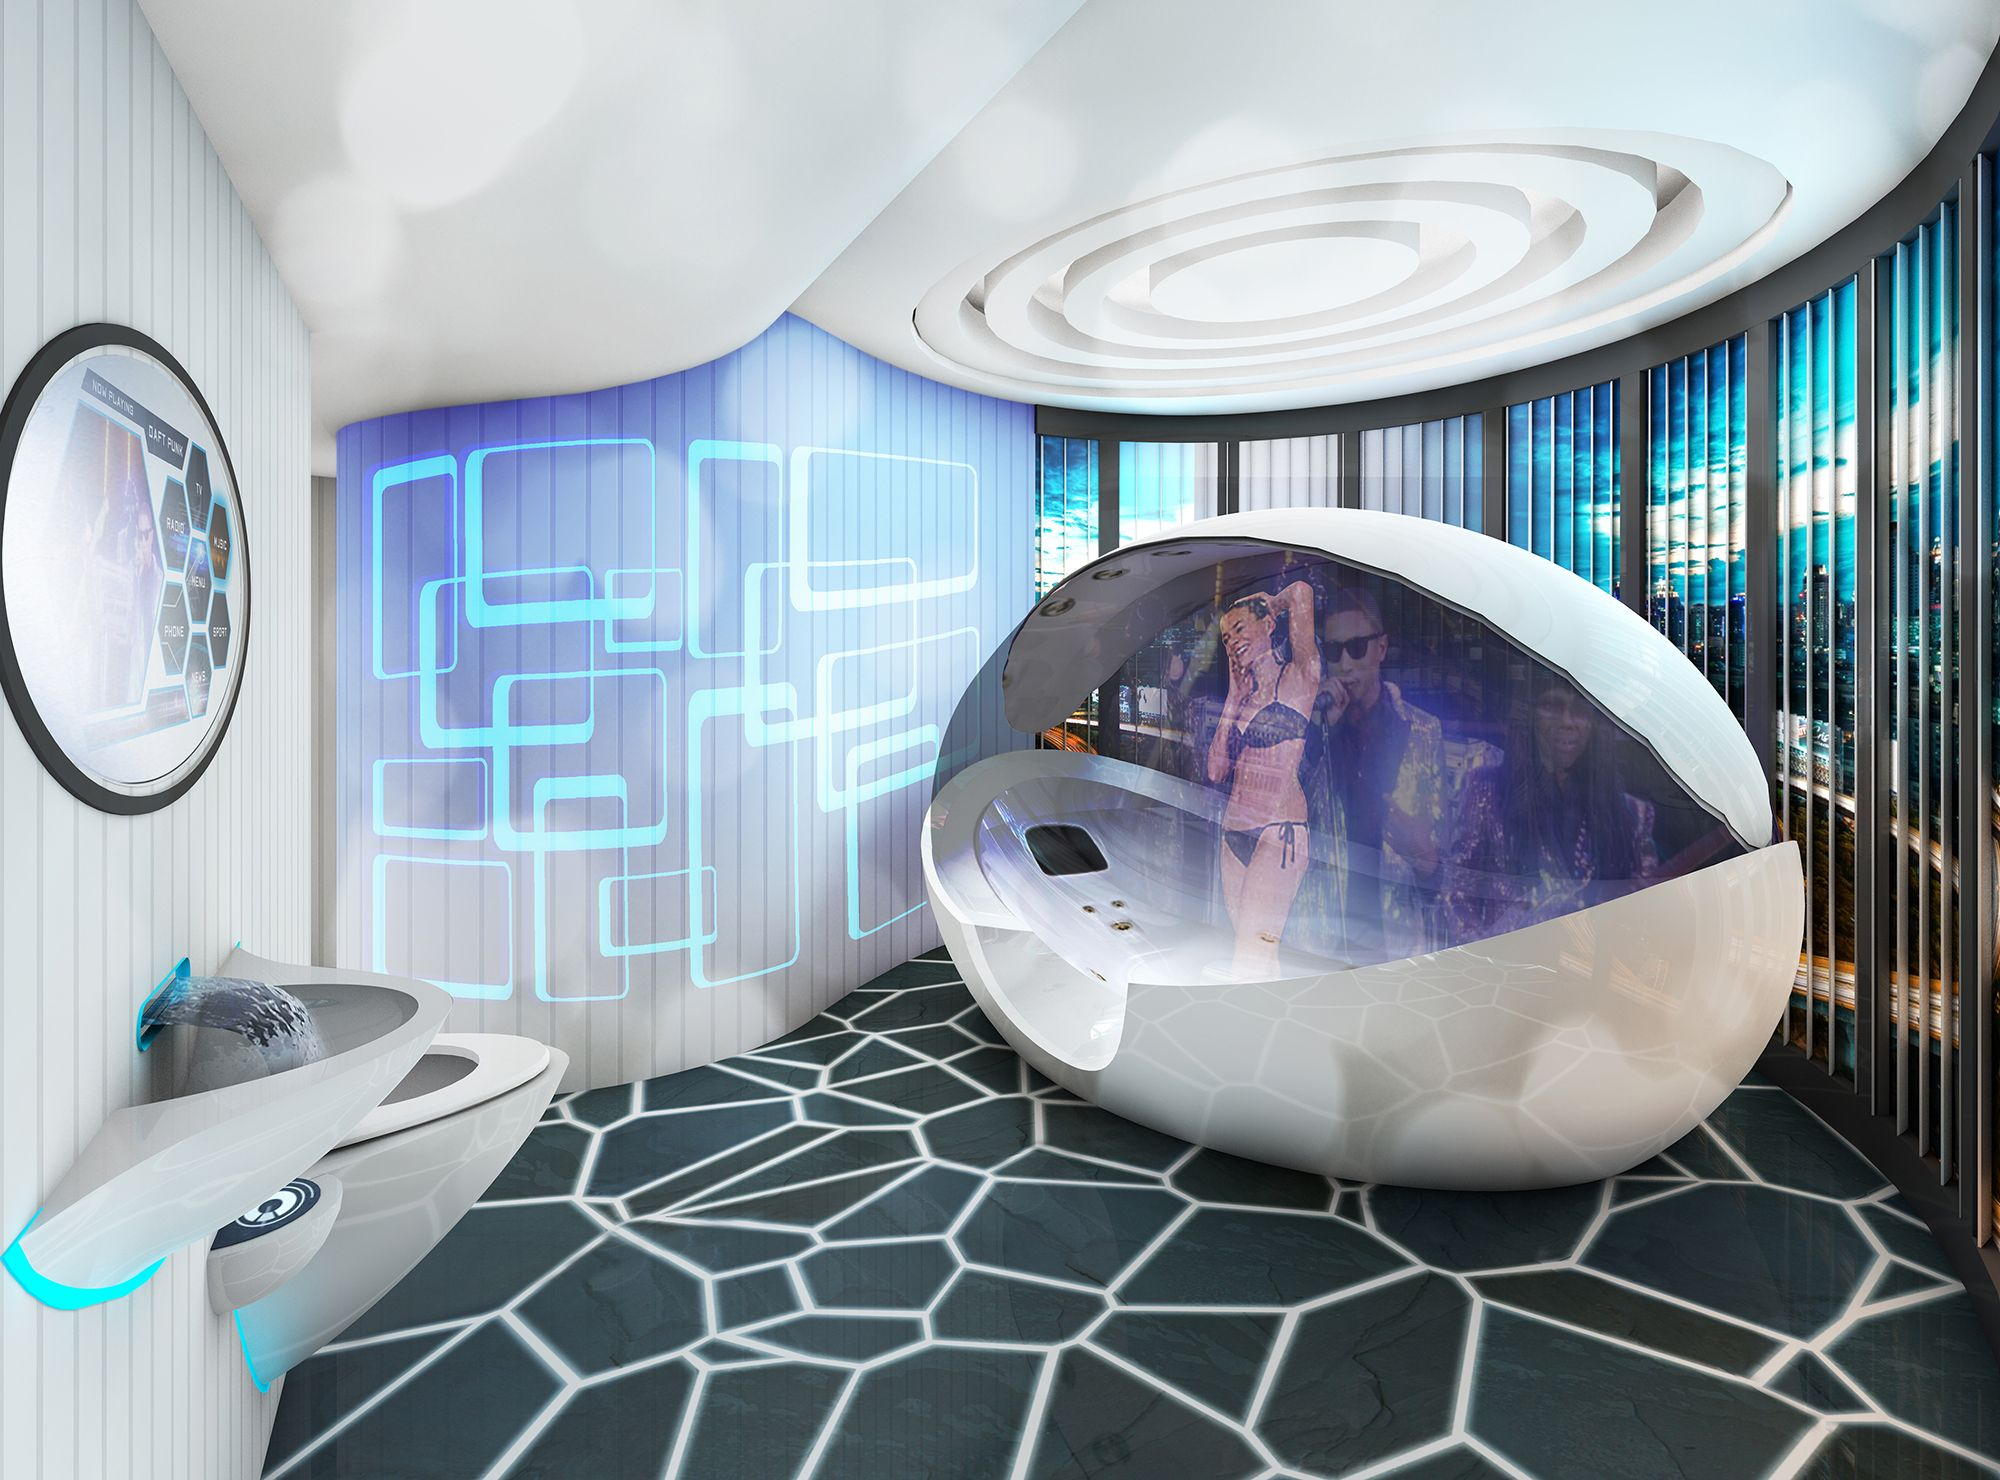 UkBathrooms Concept Image For The Bathroom Of Future A Combined Bath And Shower With Multi Media Mirror